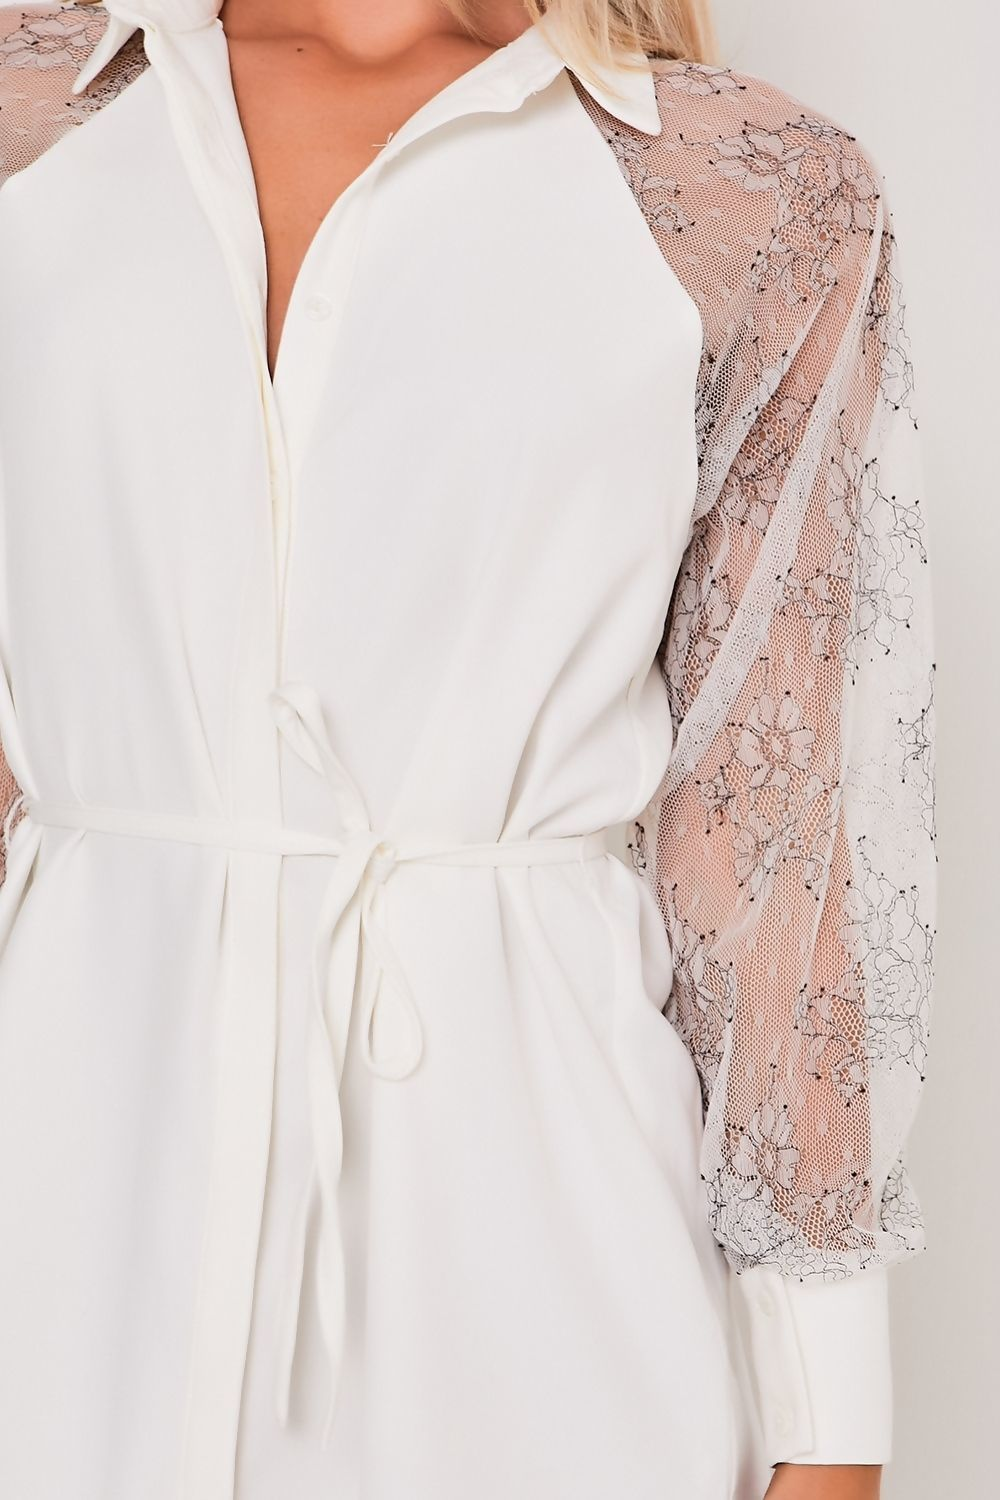 saint-genies-white-lace-sleeve-belted-shirt-dress-3.jpg